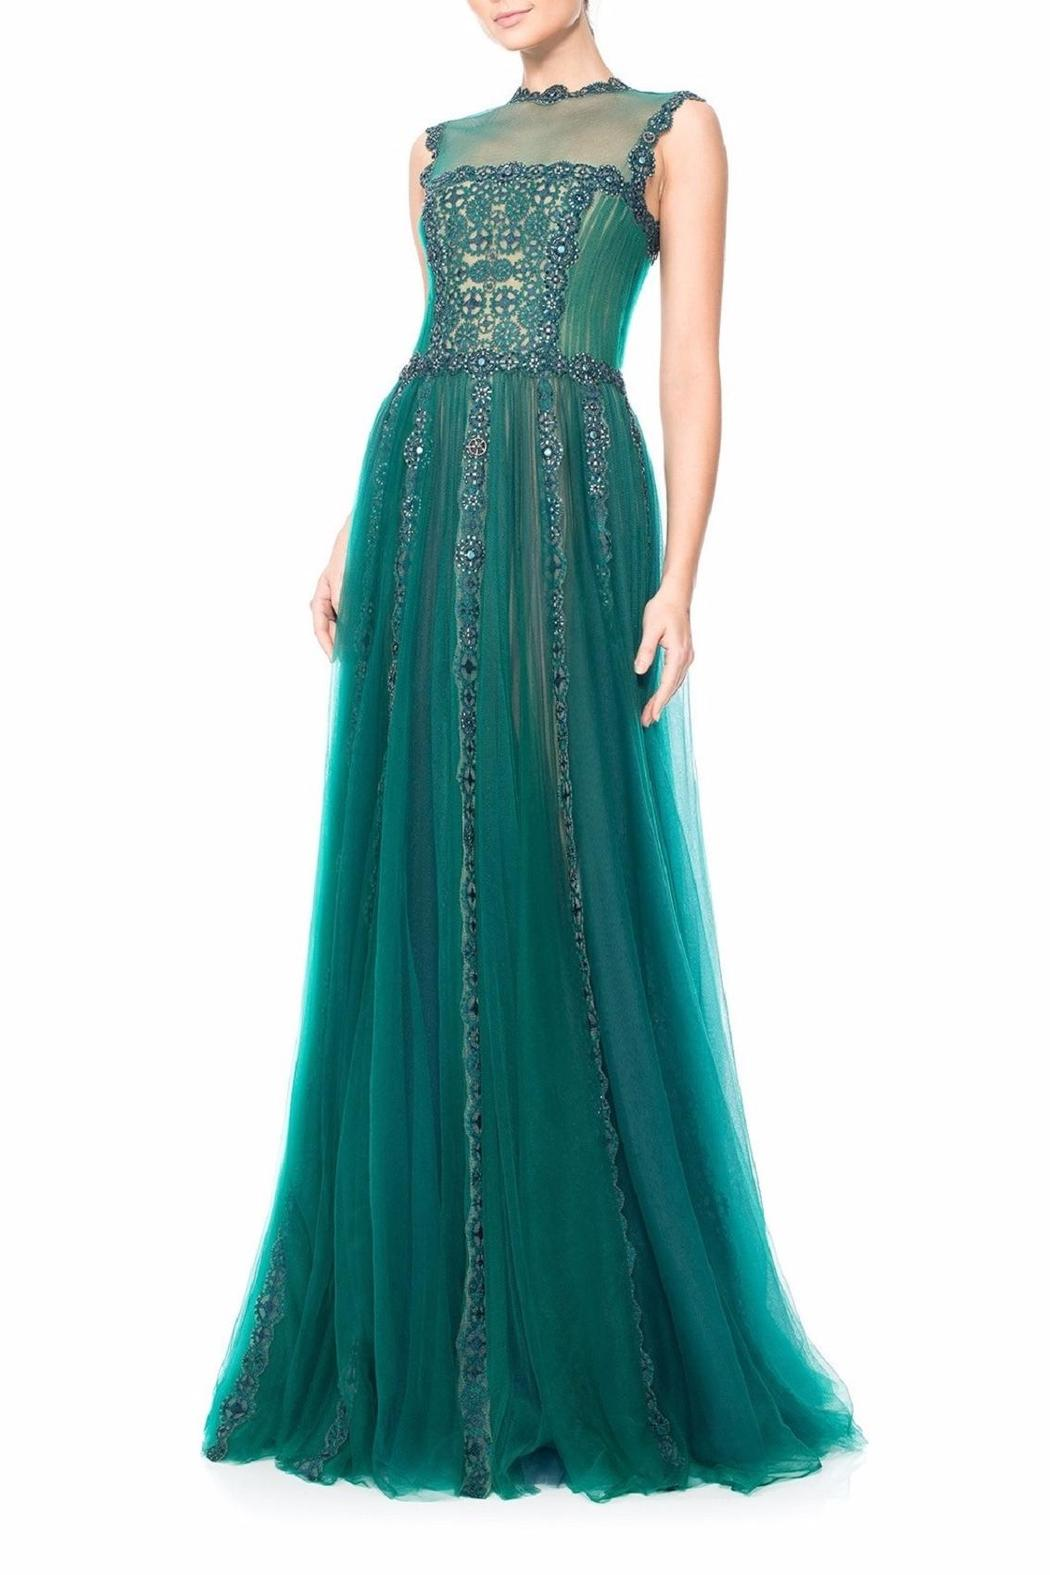 Tadashi Shoji Sleeveless Green Gown from New Jersey by District 5 ...